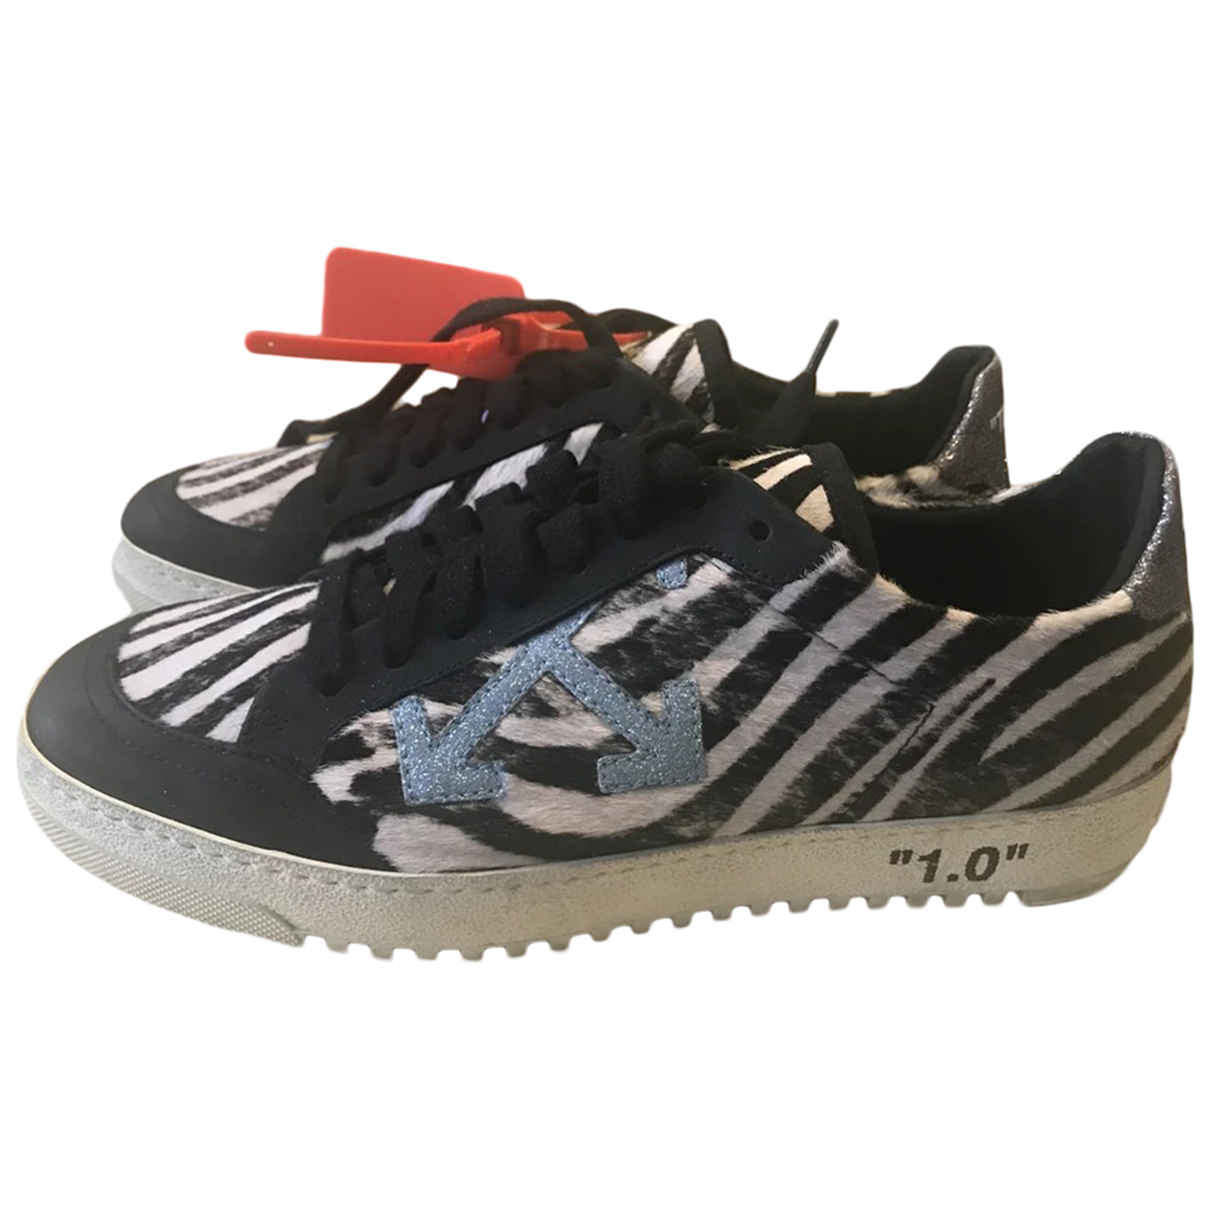 Off-white Low 2.0 Black Pony-style calfskin Trainers for Women 36 EU